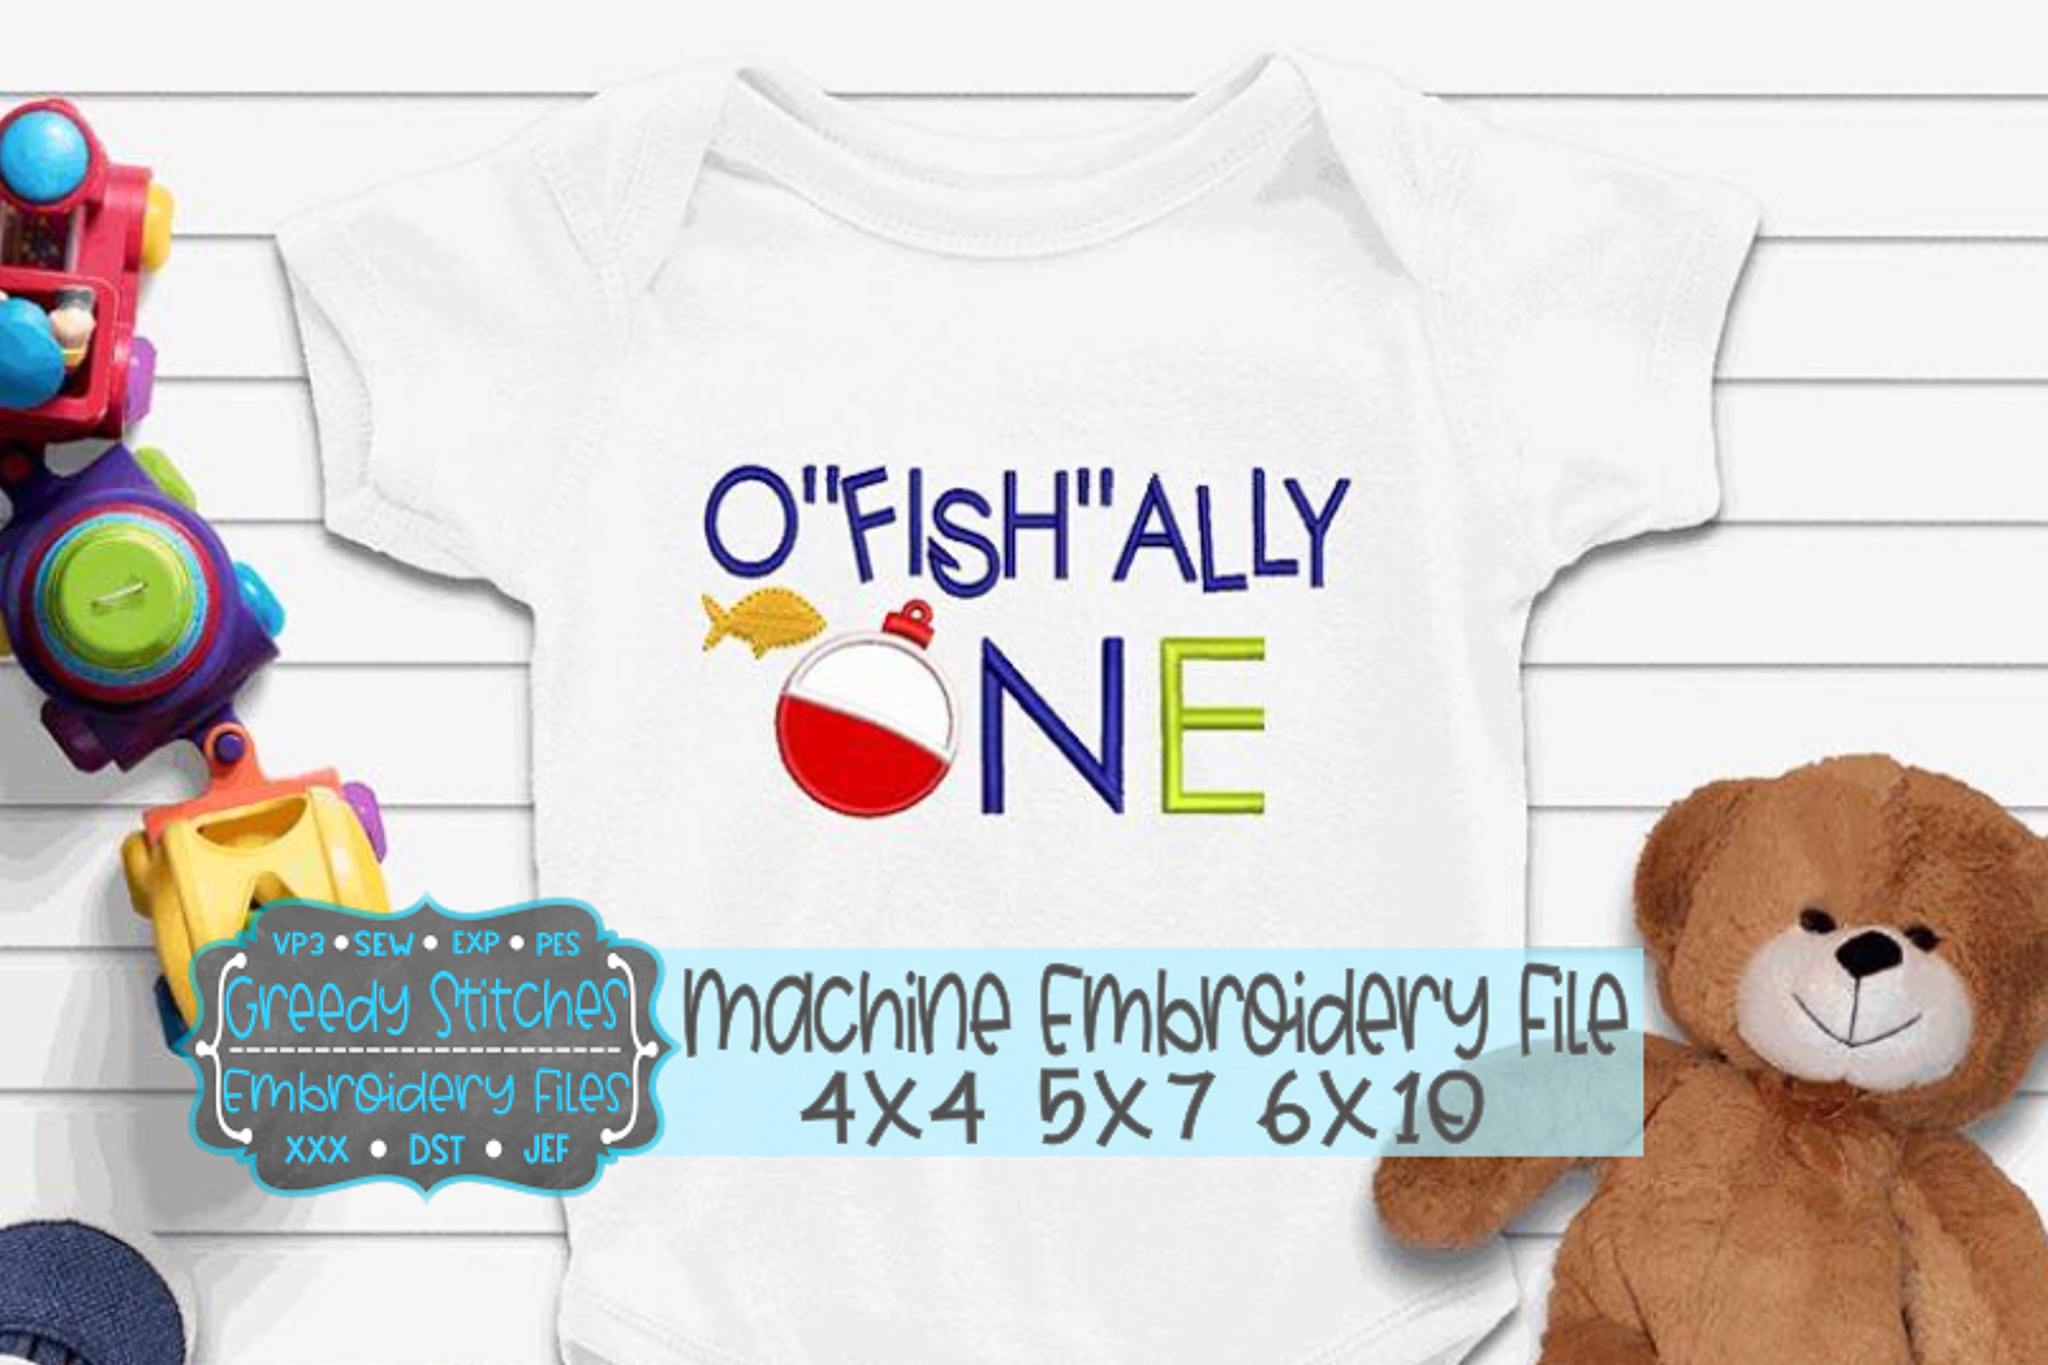 O'FISH'ALLY ONE Machne Embroidery Files example image 2